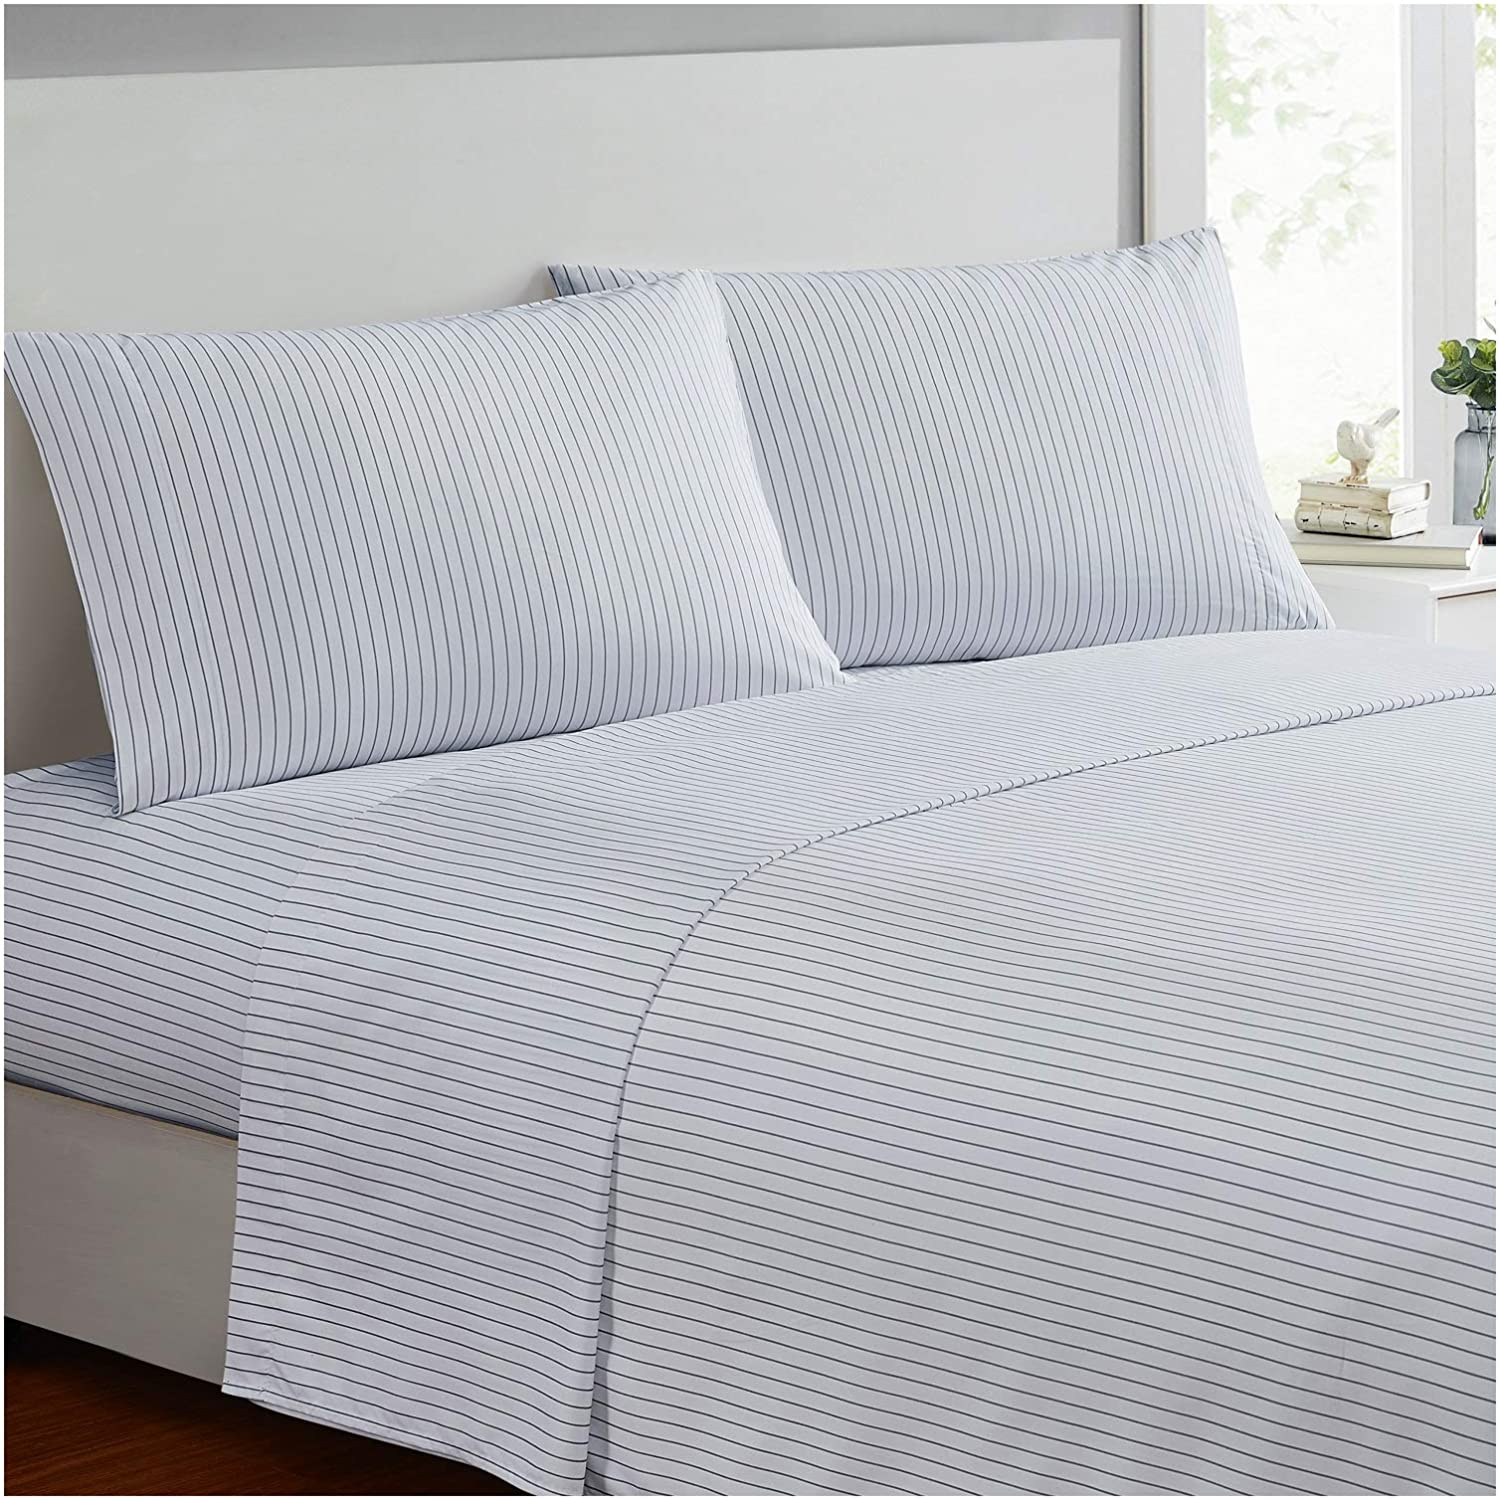 Mellanni Bed Sheet Set - Brushed Microfiber 1800 Bedding - Wrinkle, Fade, Stain Resistant - 3 Piece (Twin XL, Pin Stripe Gray)